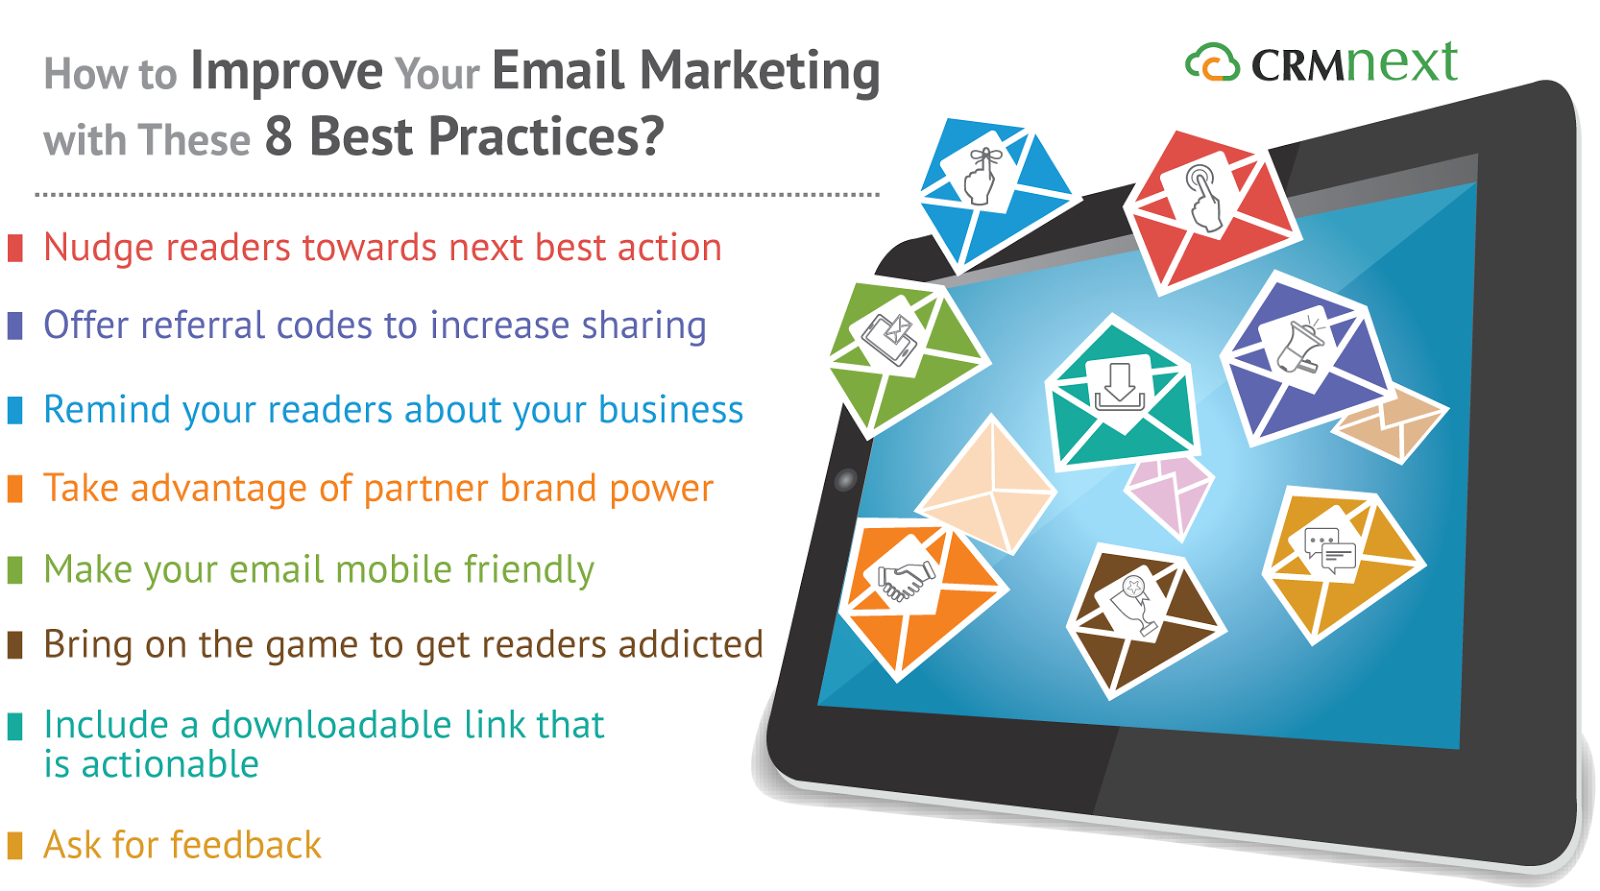 How to Improve Your Email Marketing